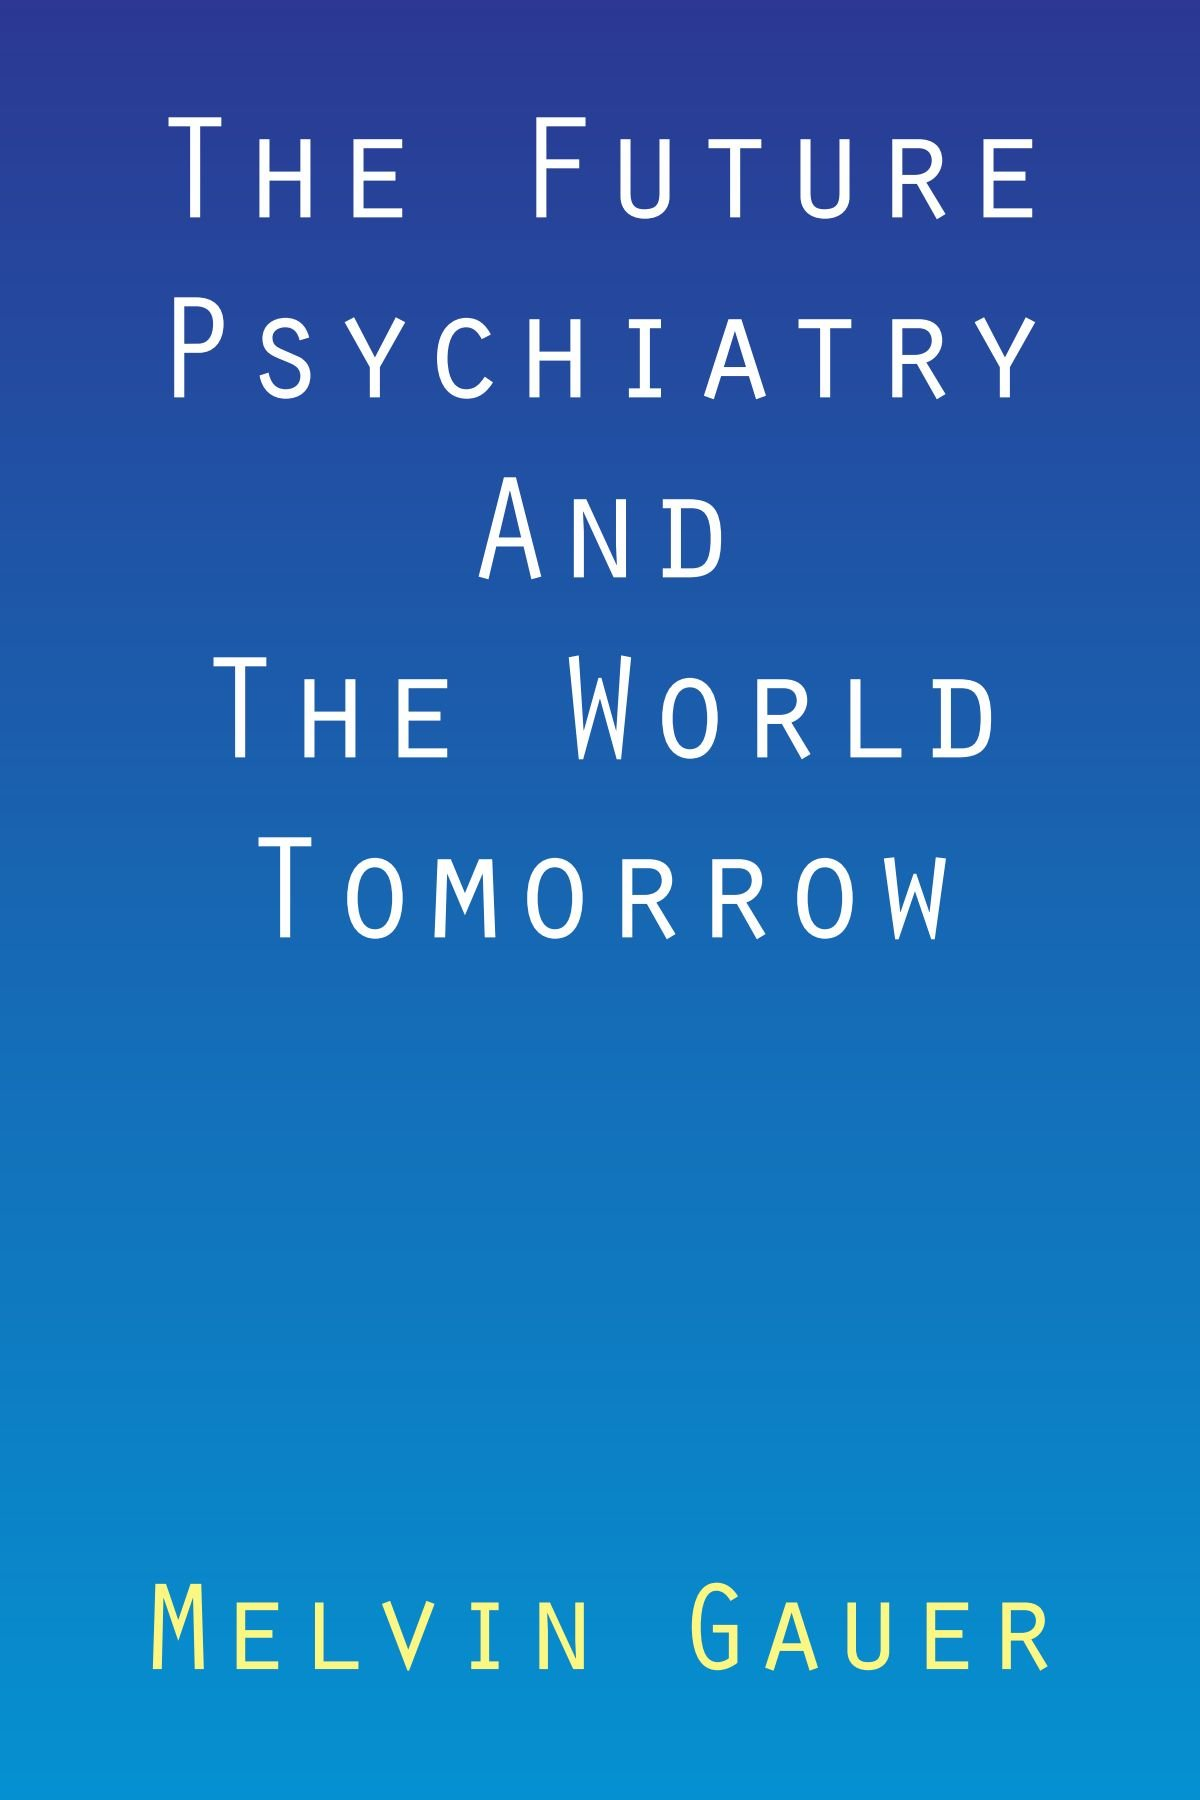 The Future Psychiatry And The World Tomorrow: Melvin Gauer